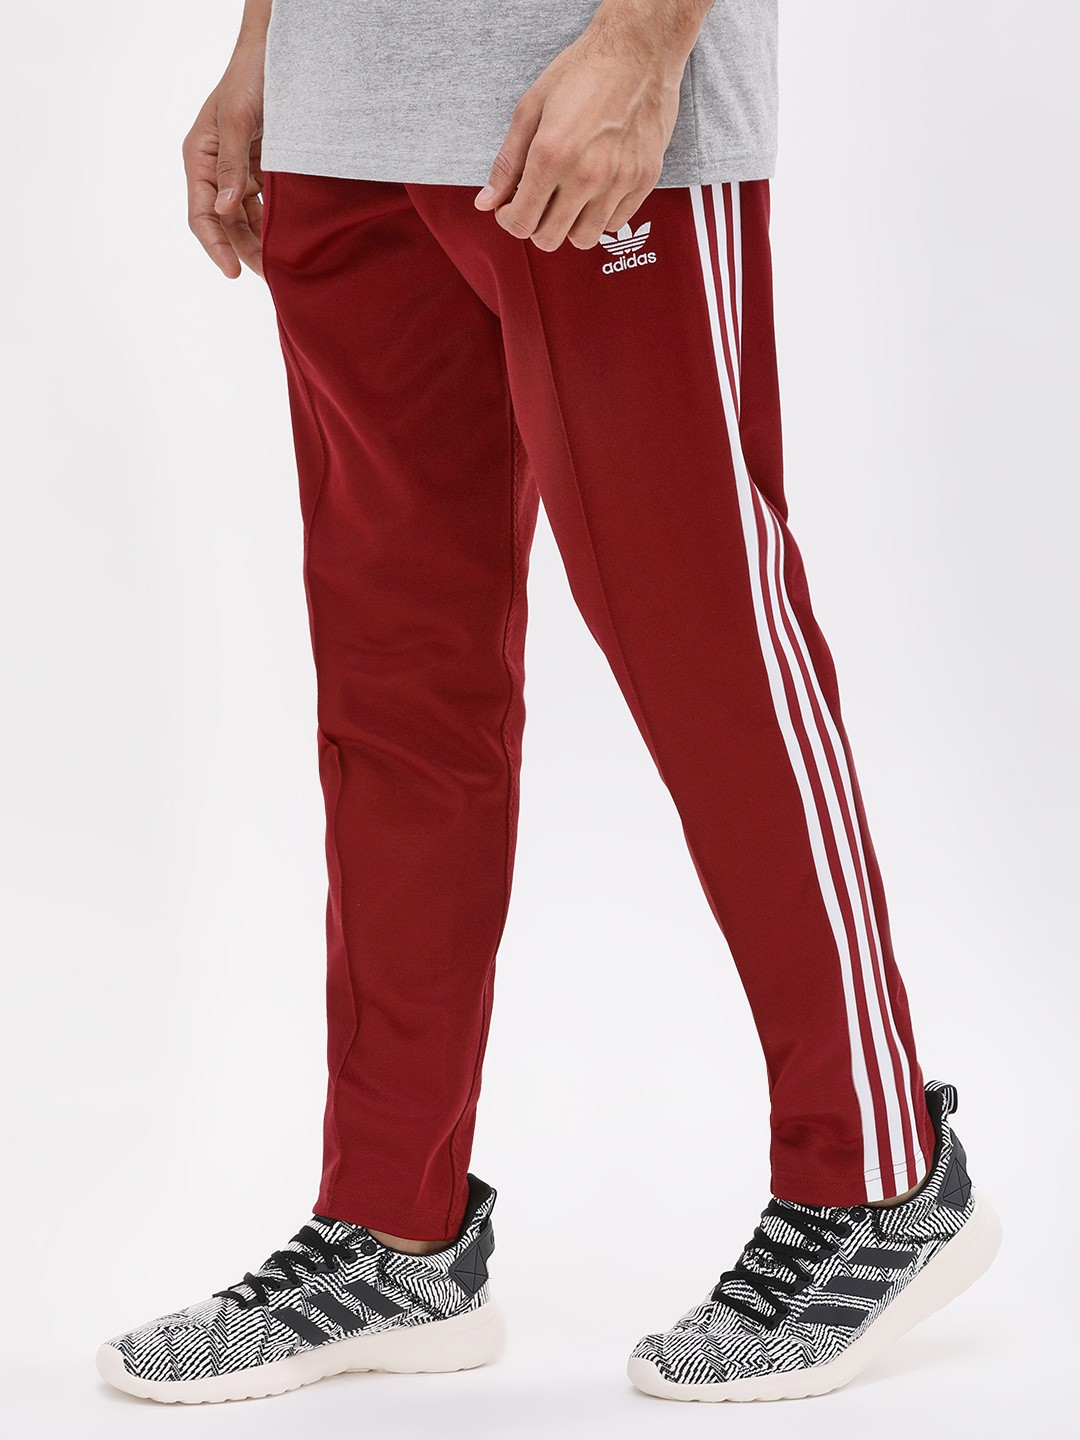 Buy Adidas Originals Red Franz Beckenbauer Track Pants for